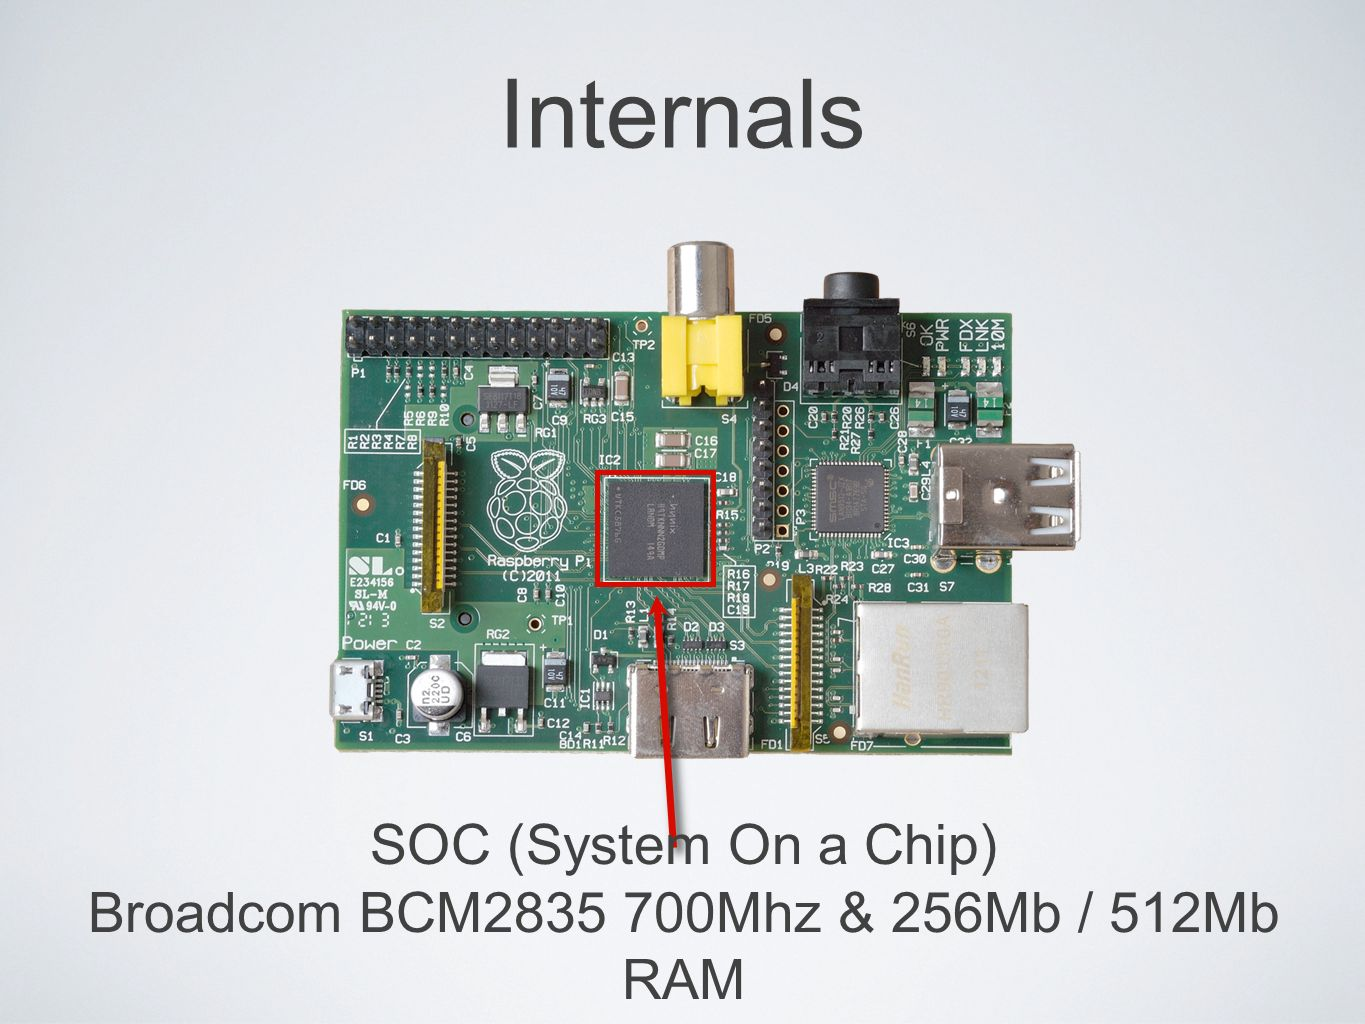 Internals SOC (System On a Chip) Broadcom BCM2835 700Mhz & 256Mb / 512Mb RAM